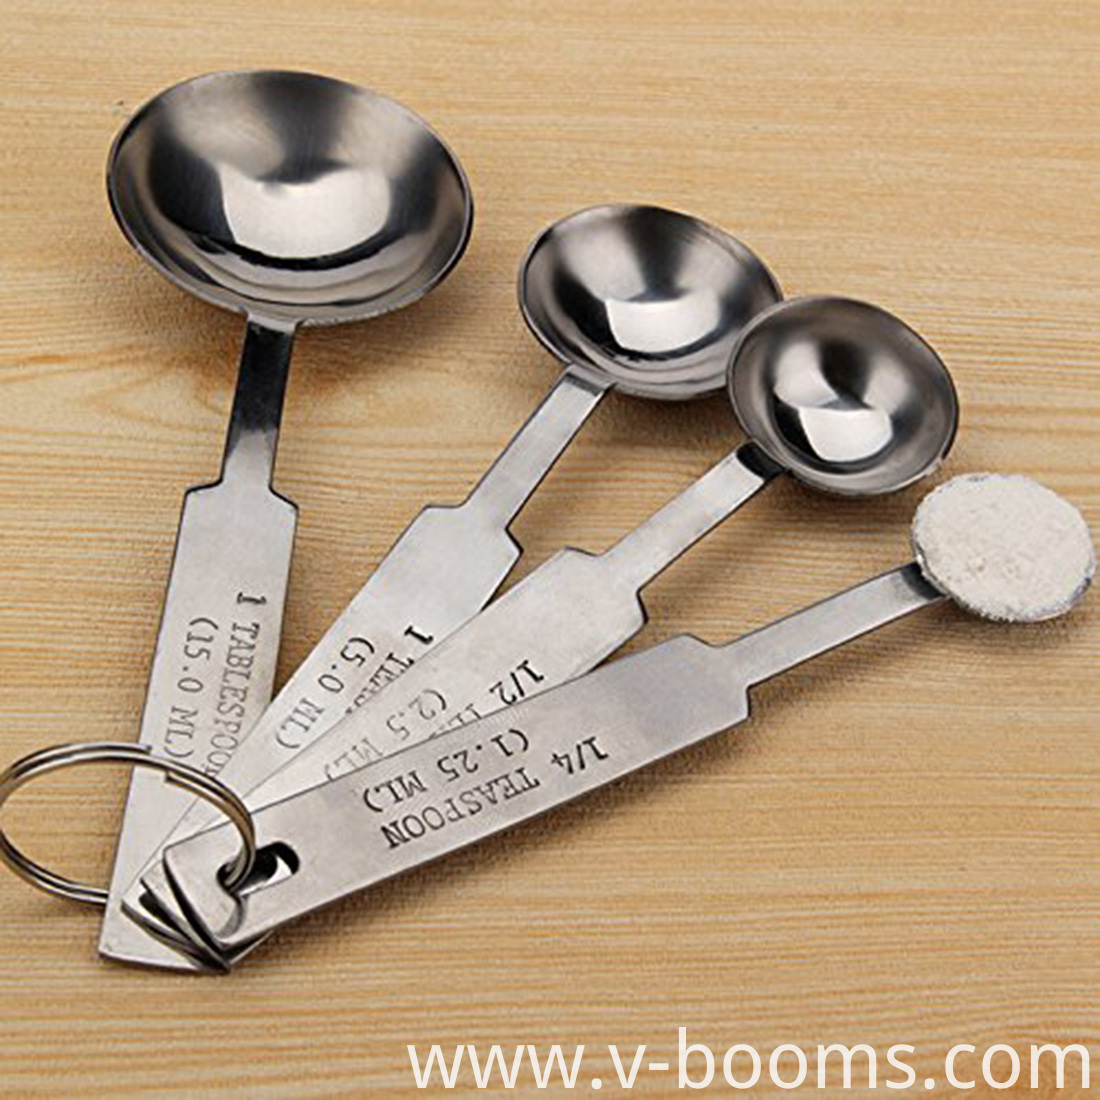 Gourmet Cooking Stainless Steel Measuring Spoons